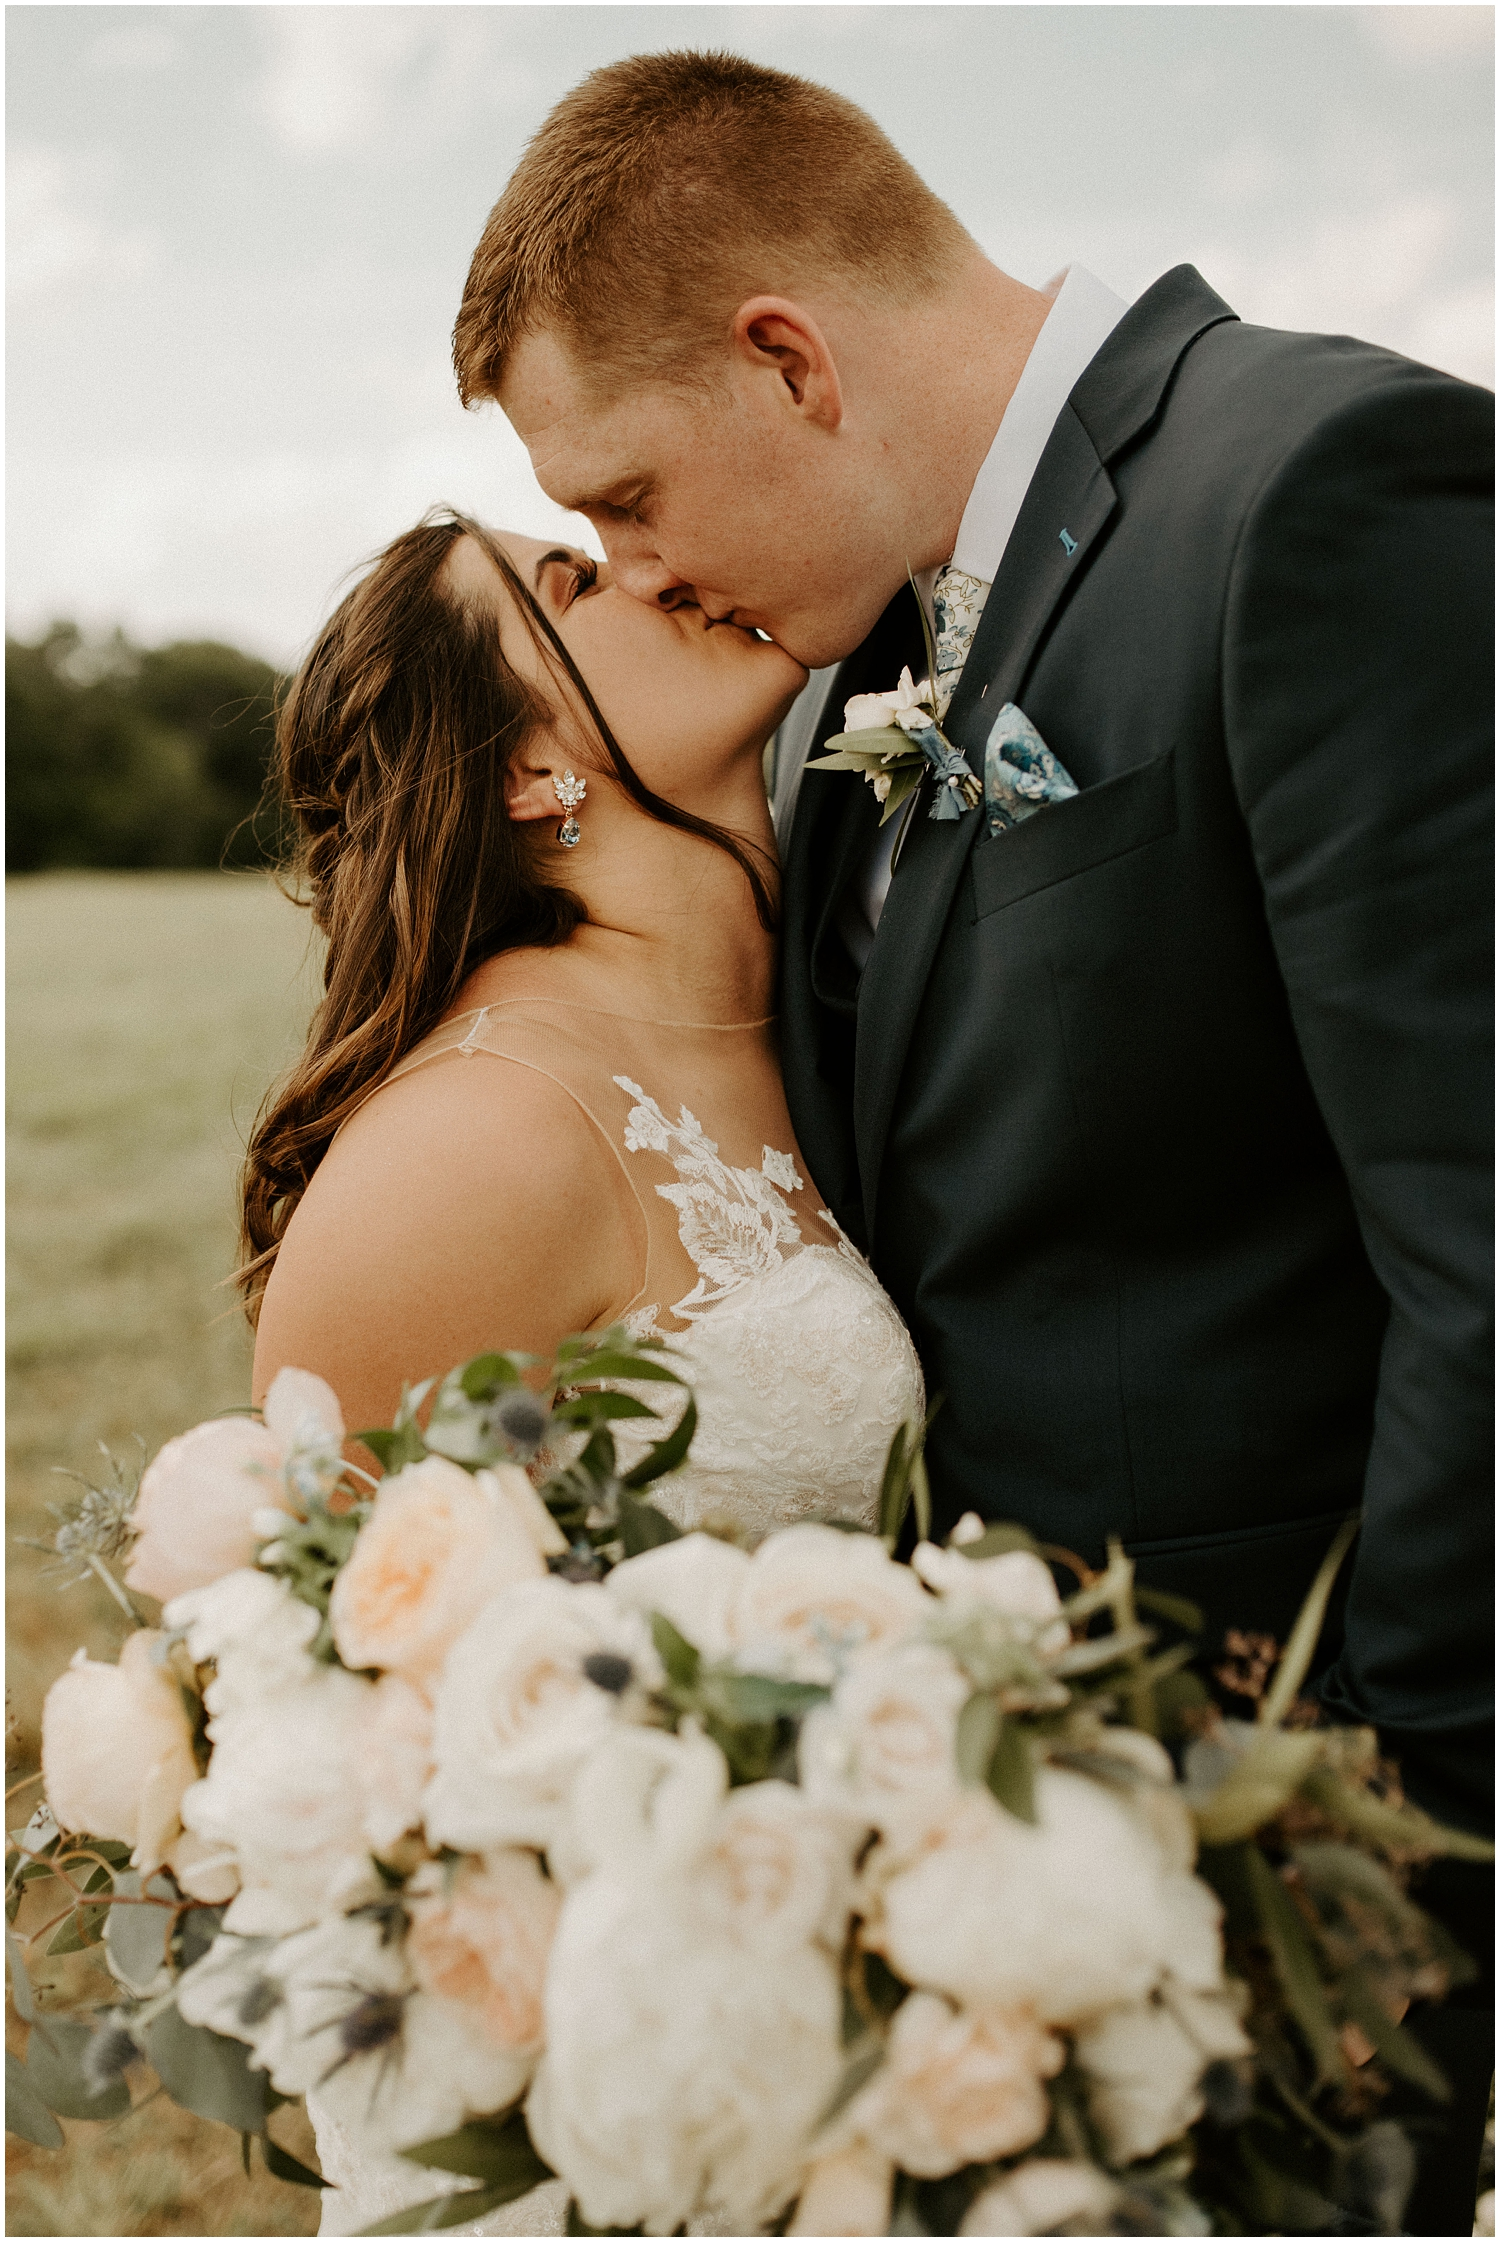 Hannah_Baldwin_Photography_BackRoom_Brewery_Virginia_Shenandoah_Valley_ Intimate_Wedding_0366.jpg